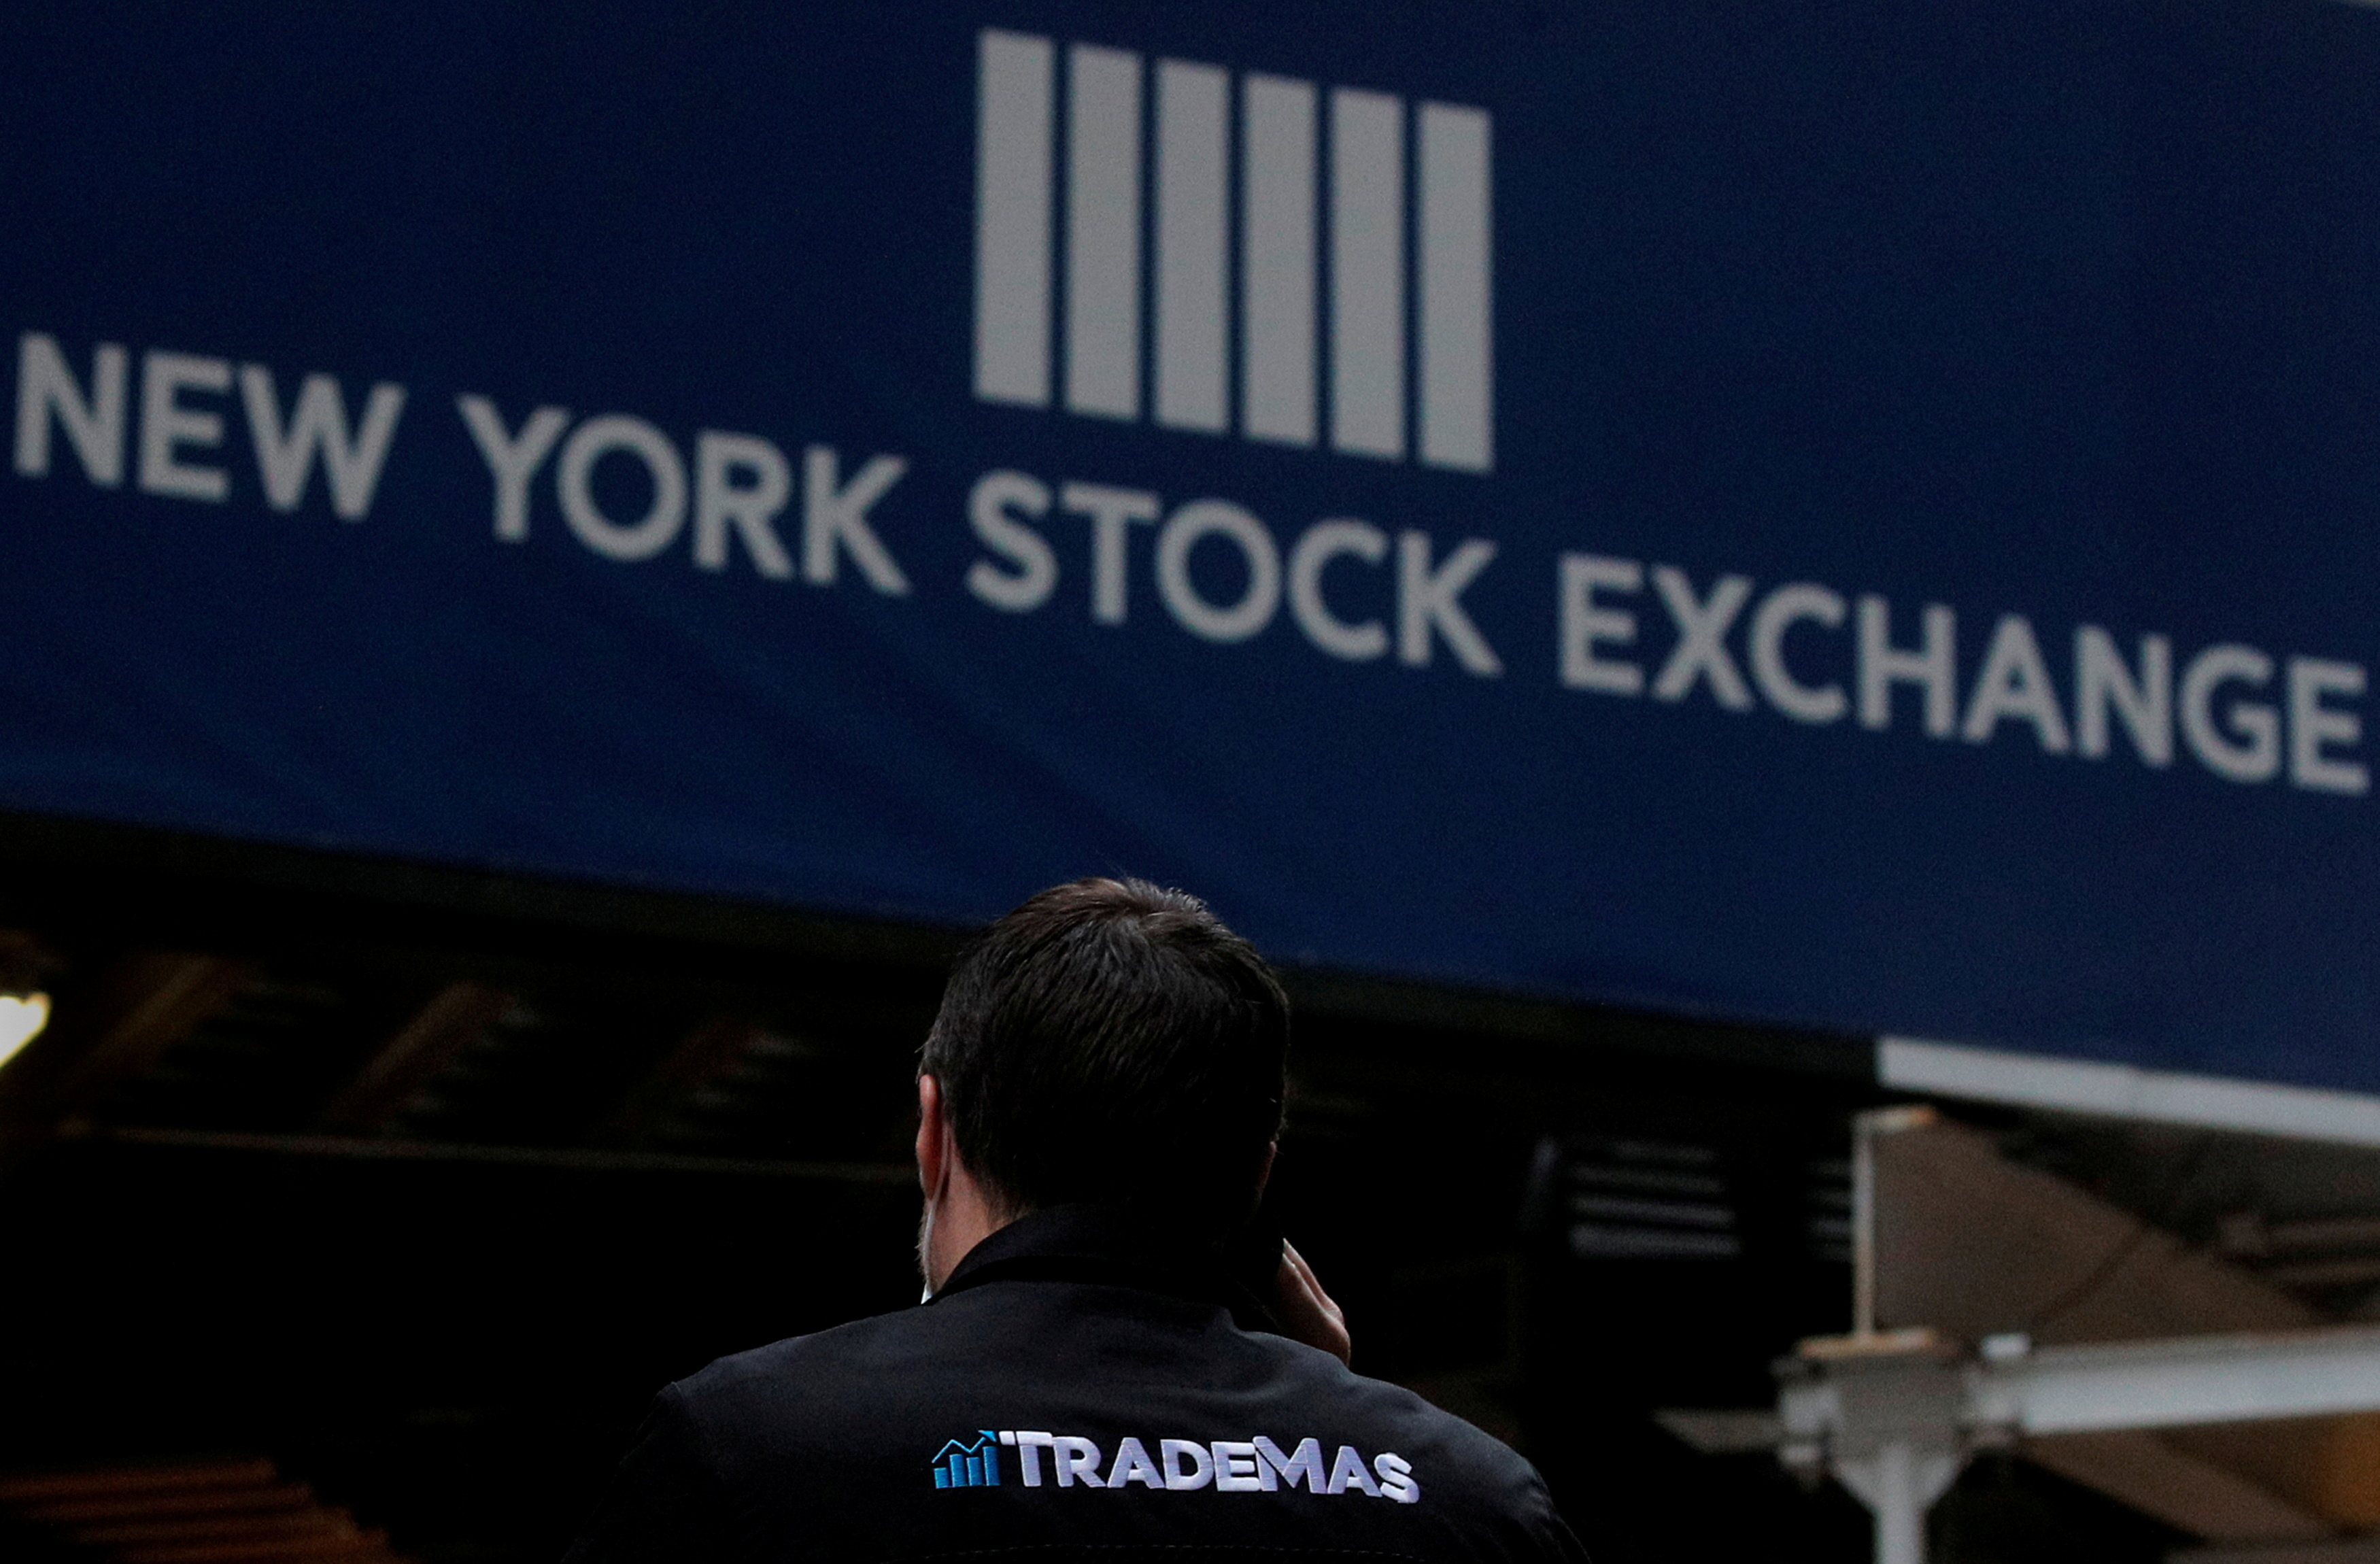 A trader talks on his phone on Wall St. outside the New York Stock Exchange (NYSE) in New York, U.S., January 15, 2021. REUTERS/Brendan McDermid